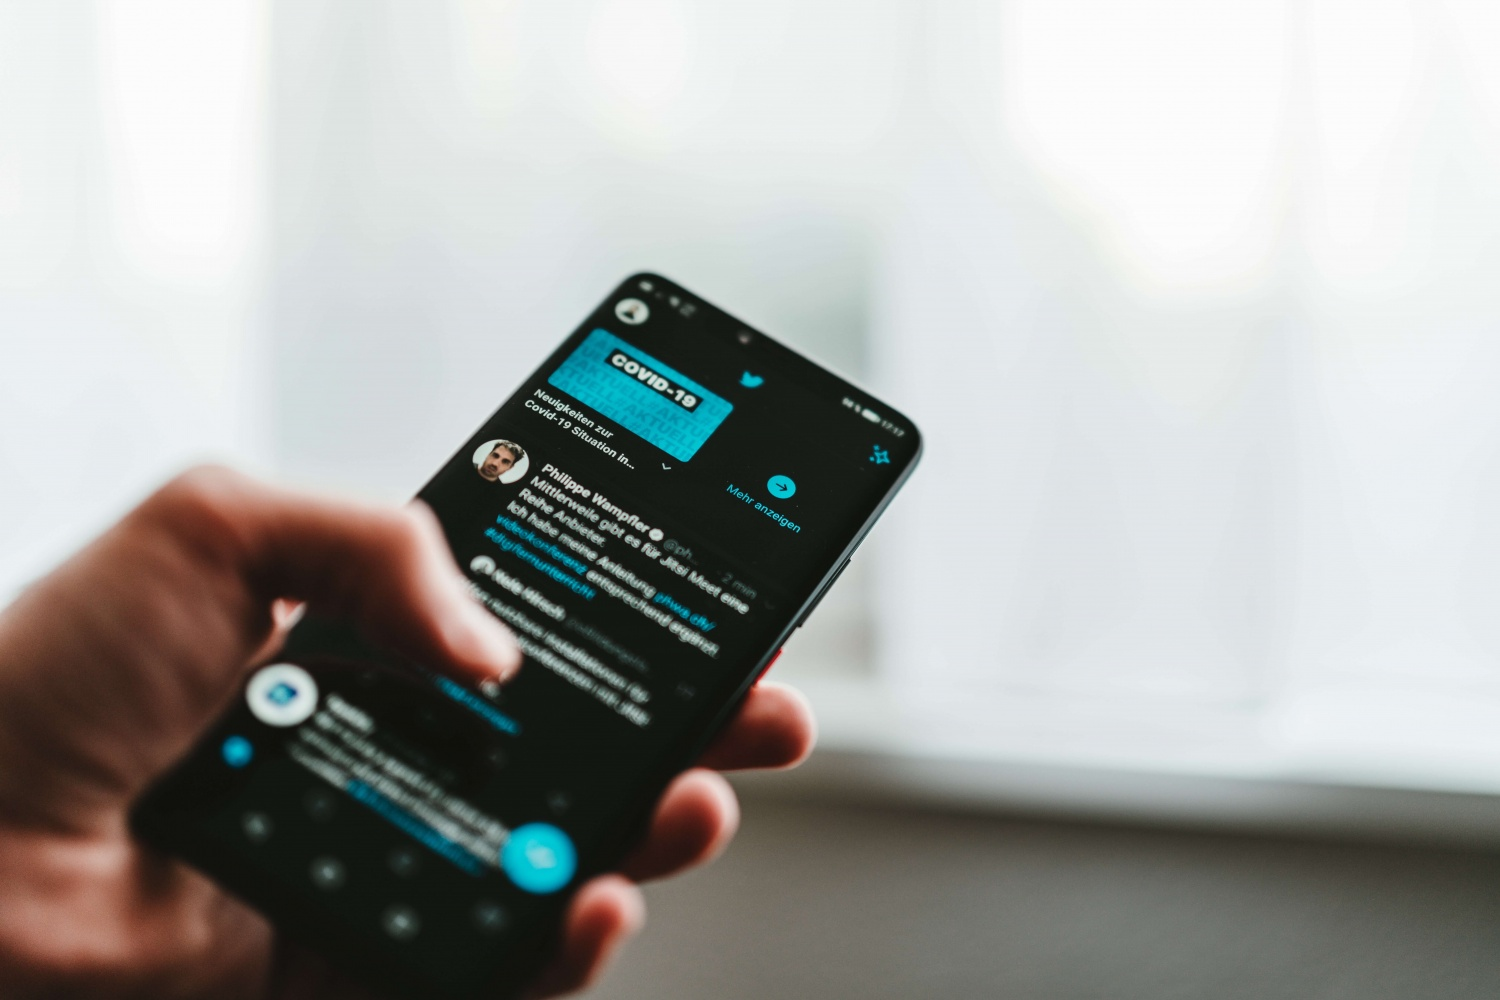 Twitter New Feature Could Let Users Report 'Misleading Tweets'   Crackdown on Fake Info Approach